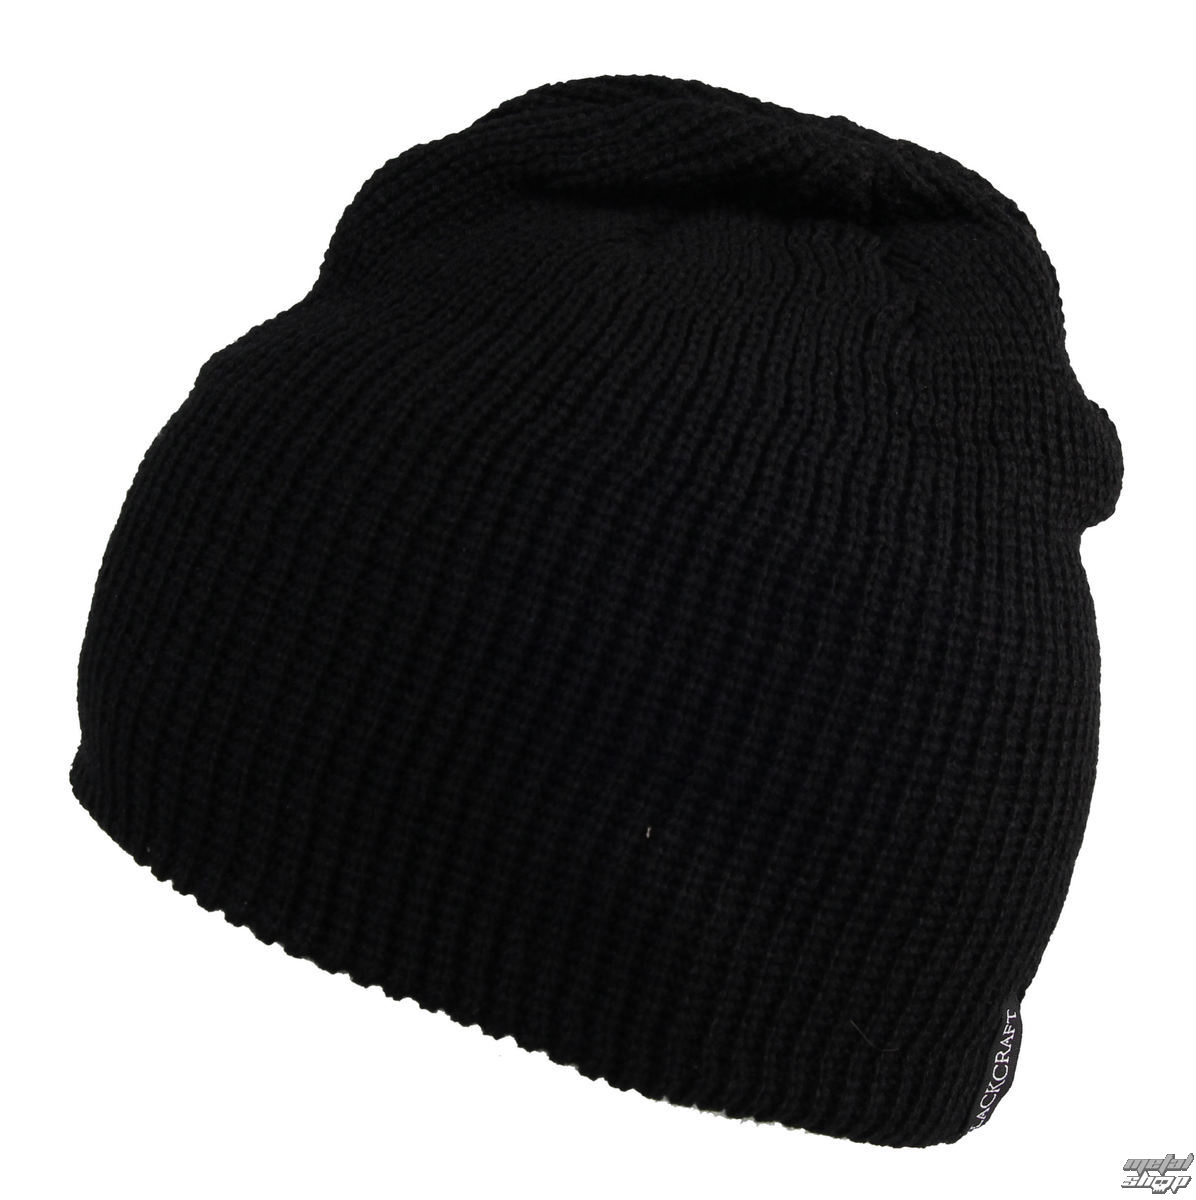 beanie BLACK CRAFT - Knit Beanie - BN002KT - metal-shop.eu 3b05fecfb64